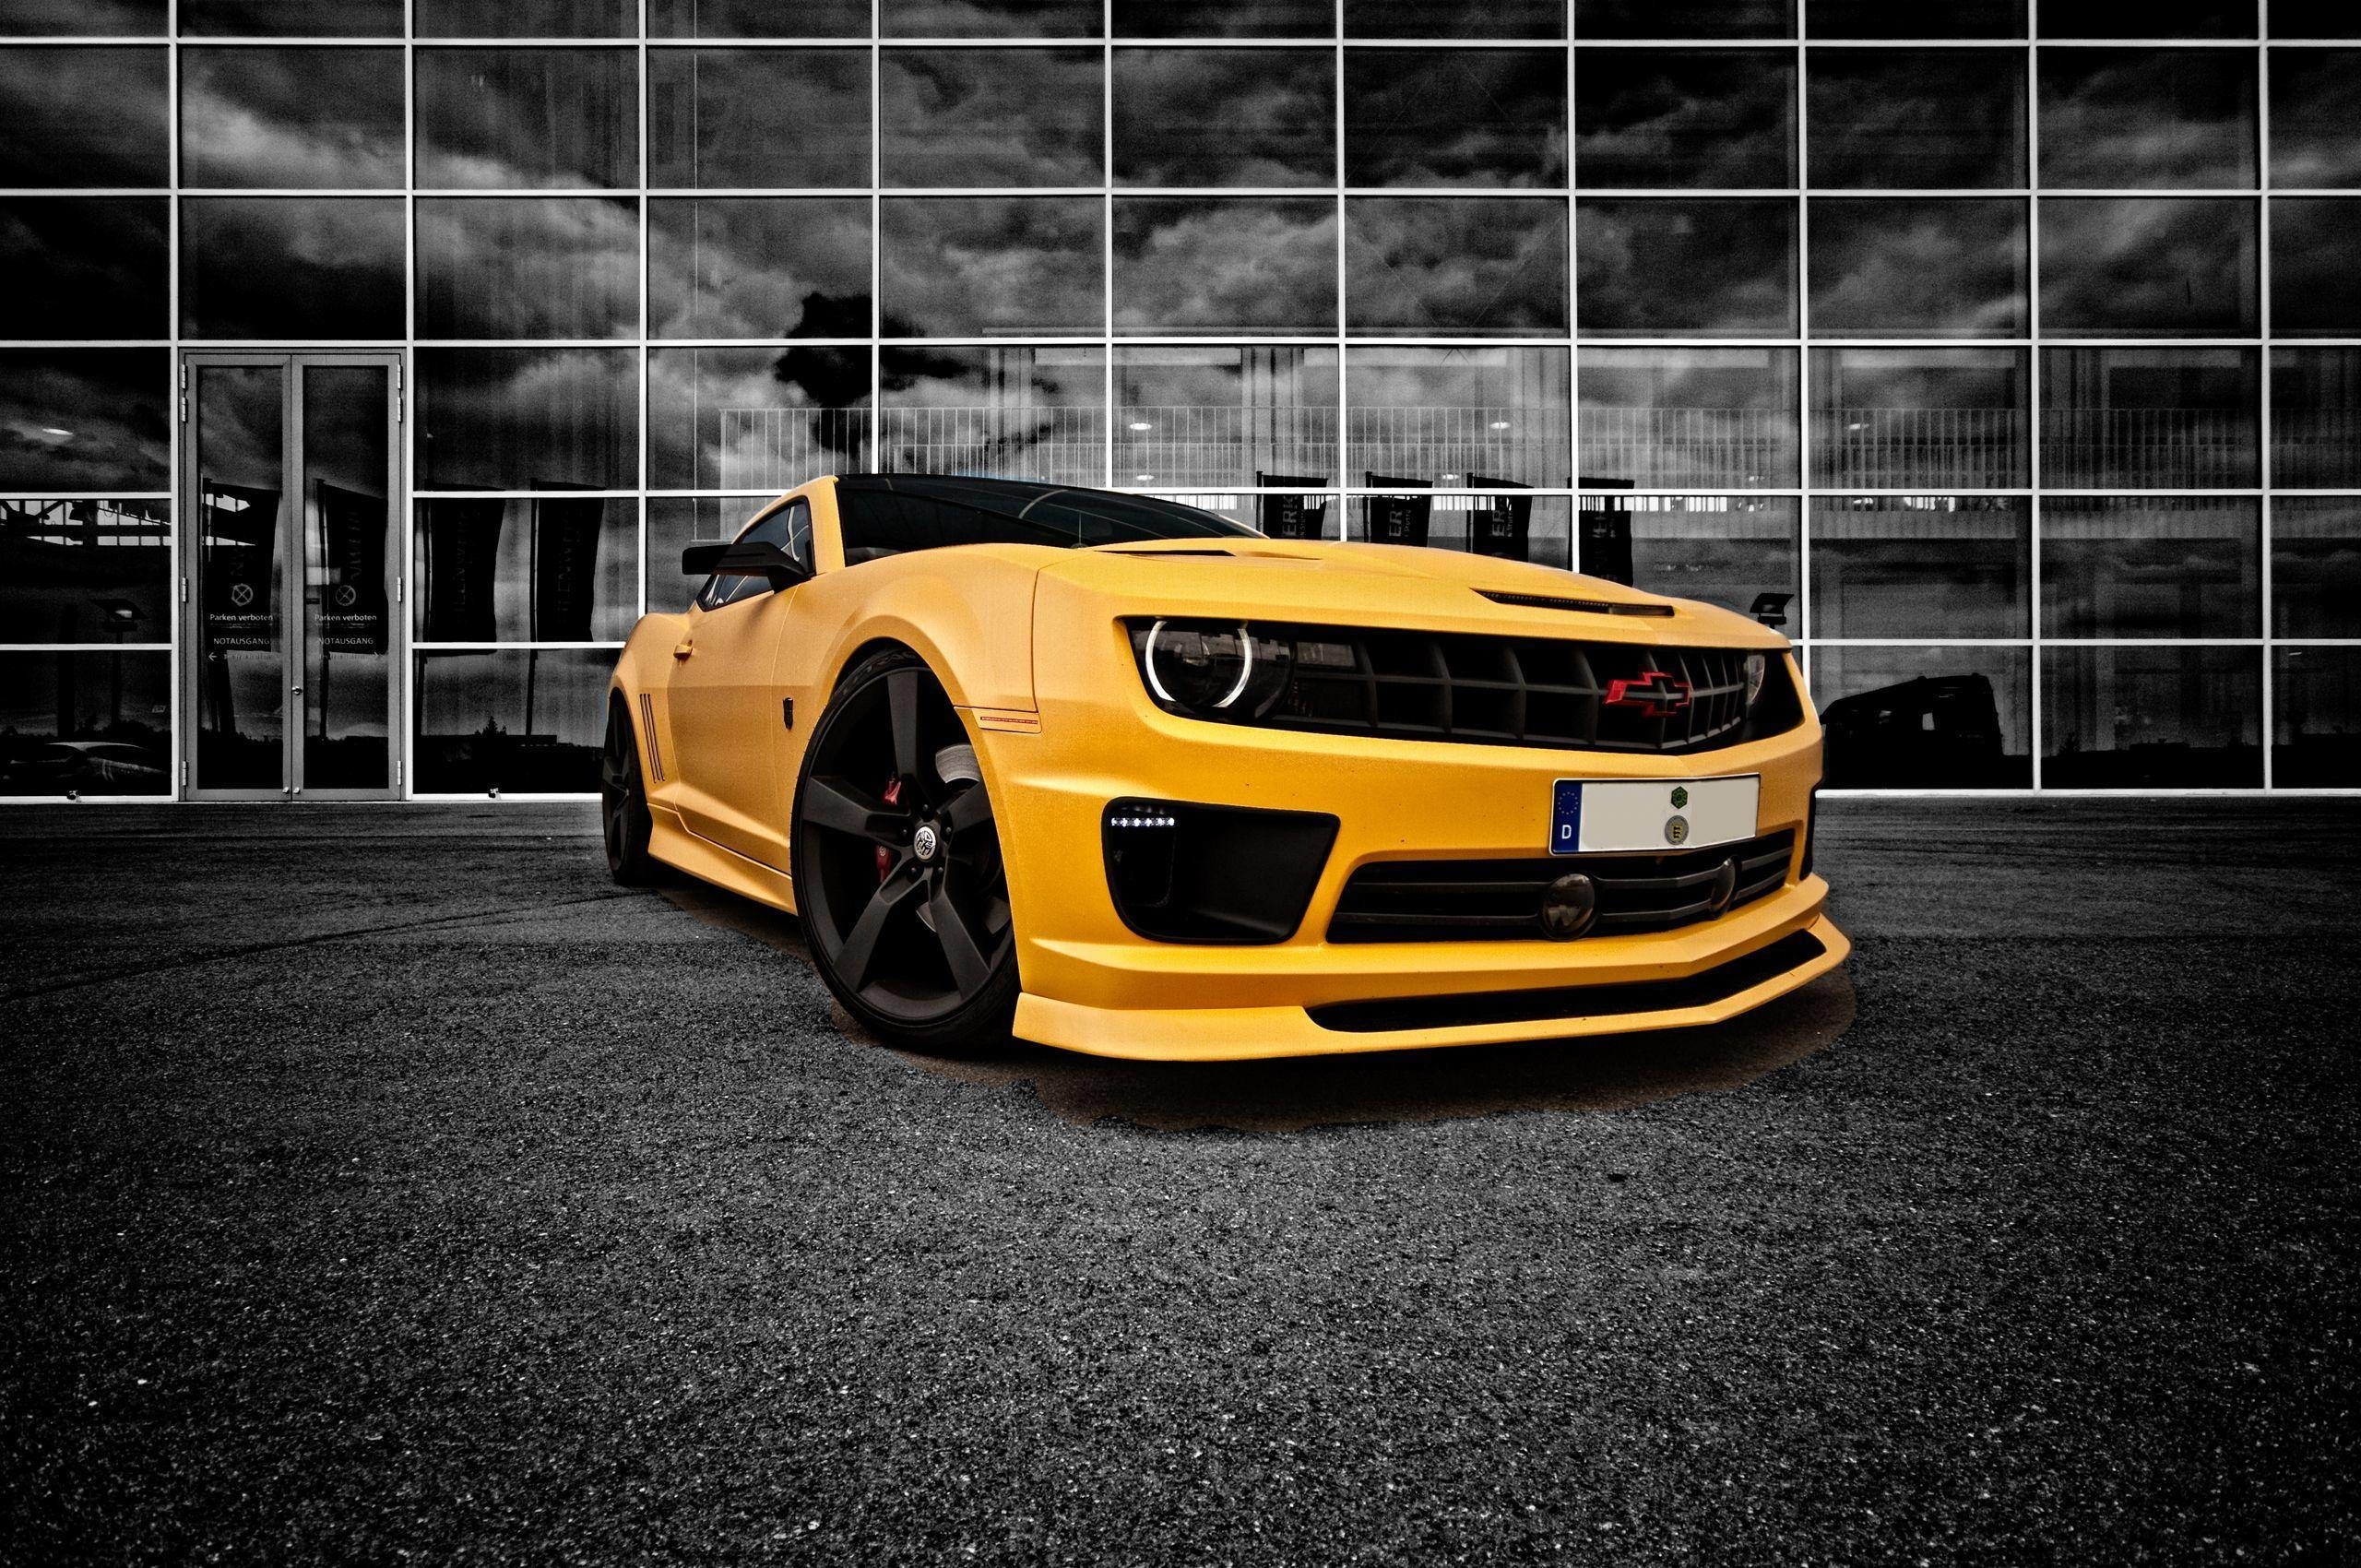 1969 Camaro Ss Wallpaper >> Bumblebee 2018 Wallpaper HD ·①